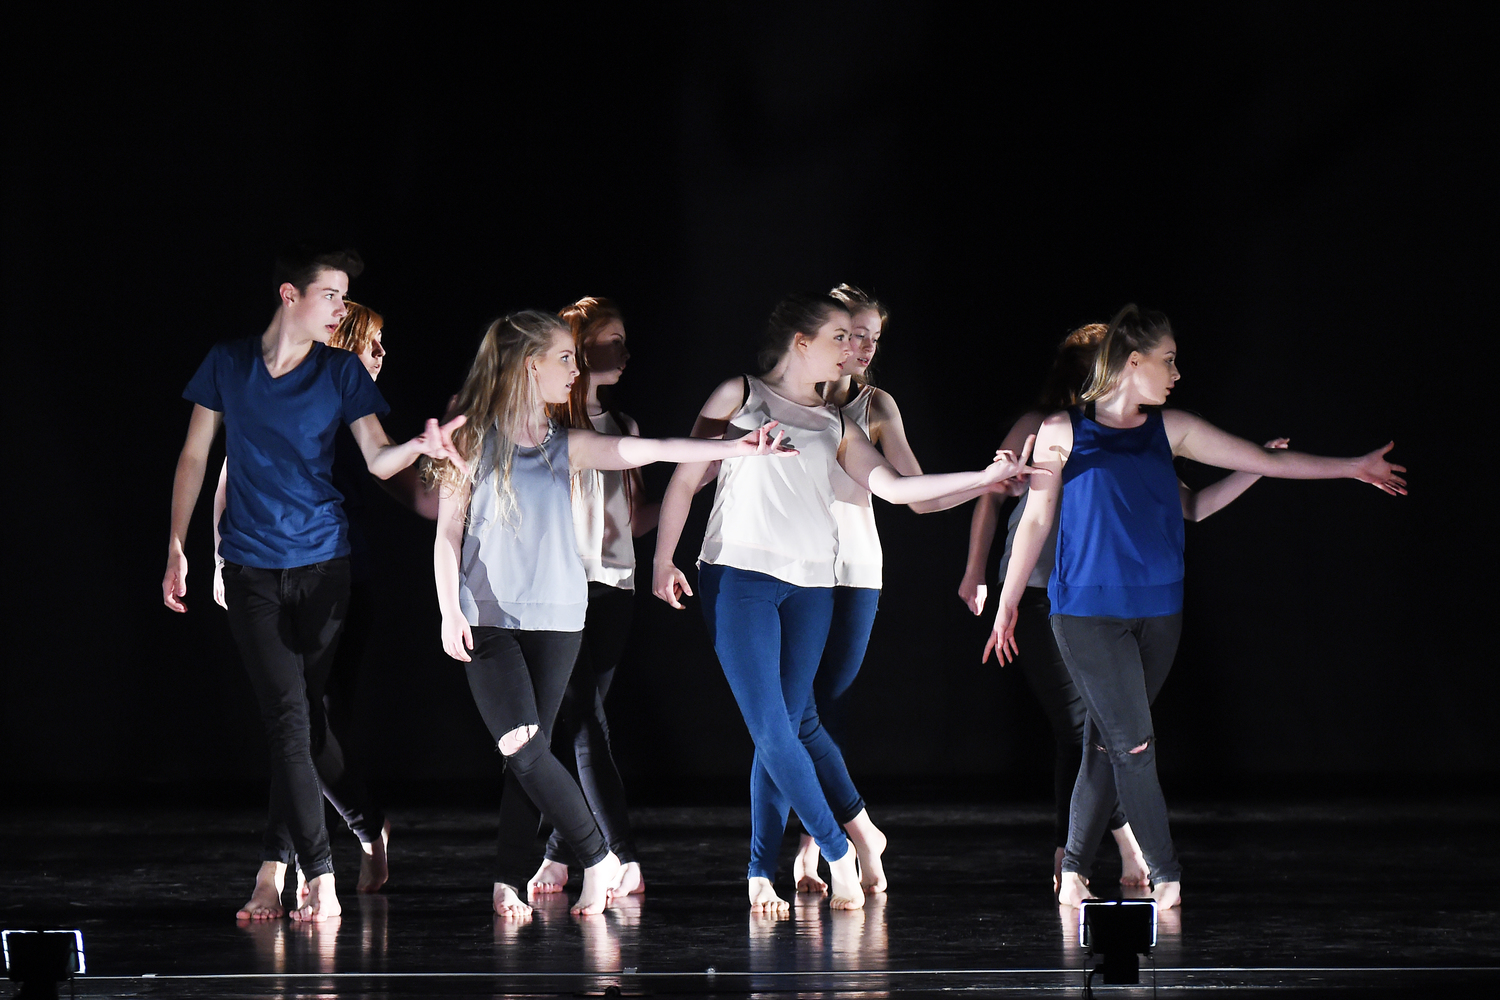 Glasgow Youth Dance Company 3